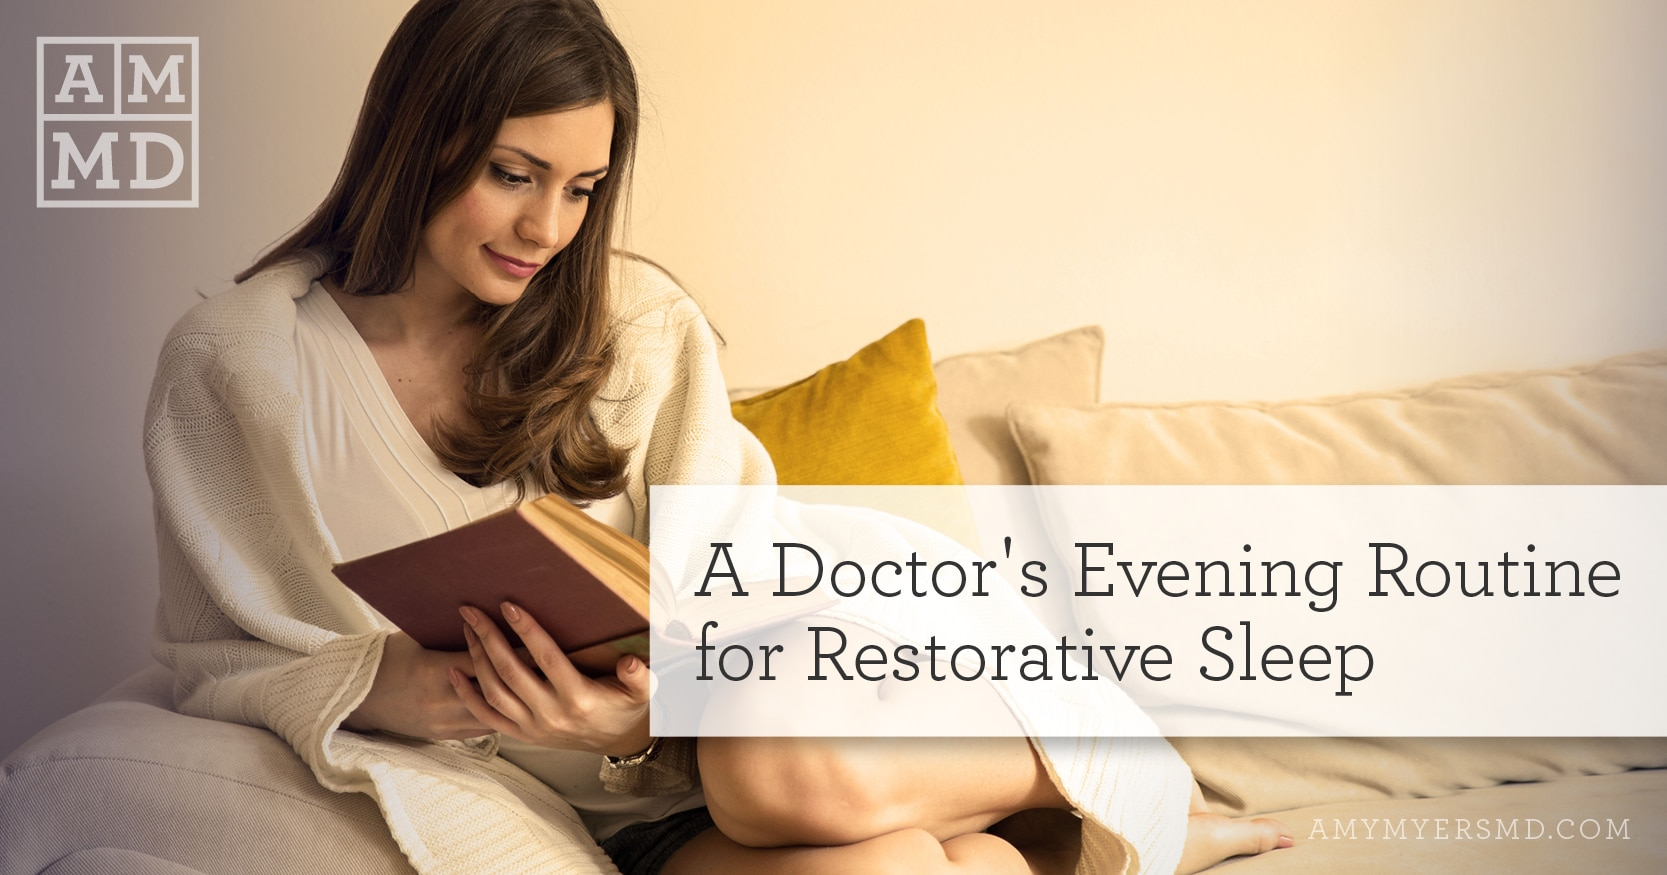 A Doctor's Evening Routine for Restorative Sleep - A Woman Reading - Featured Image - Amy Myers MD